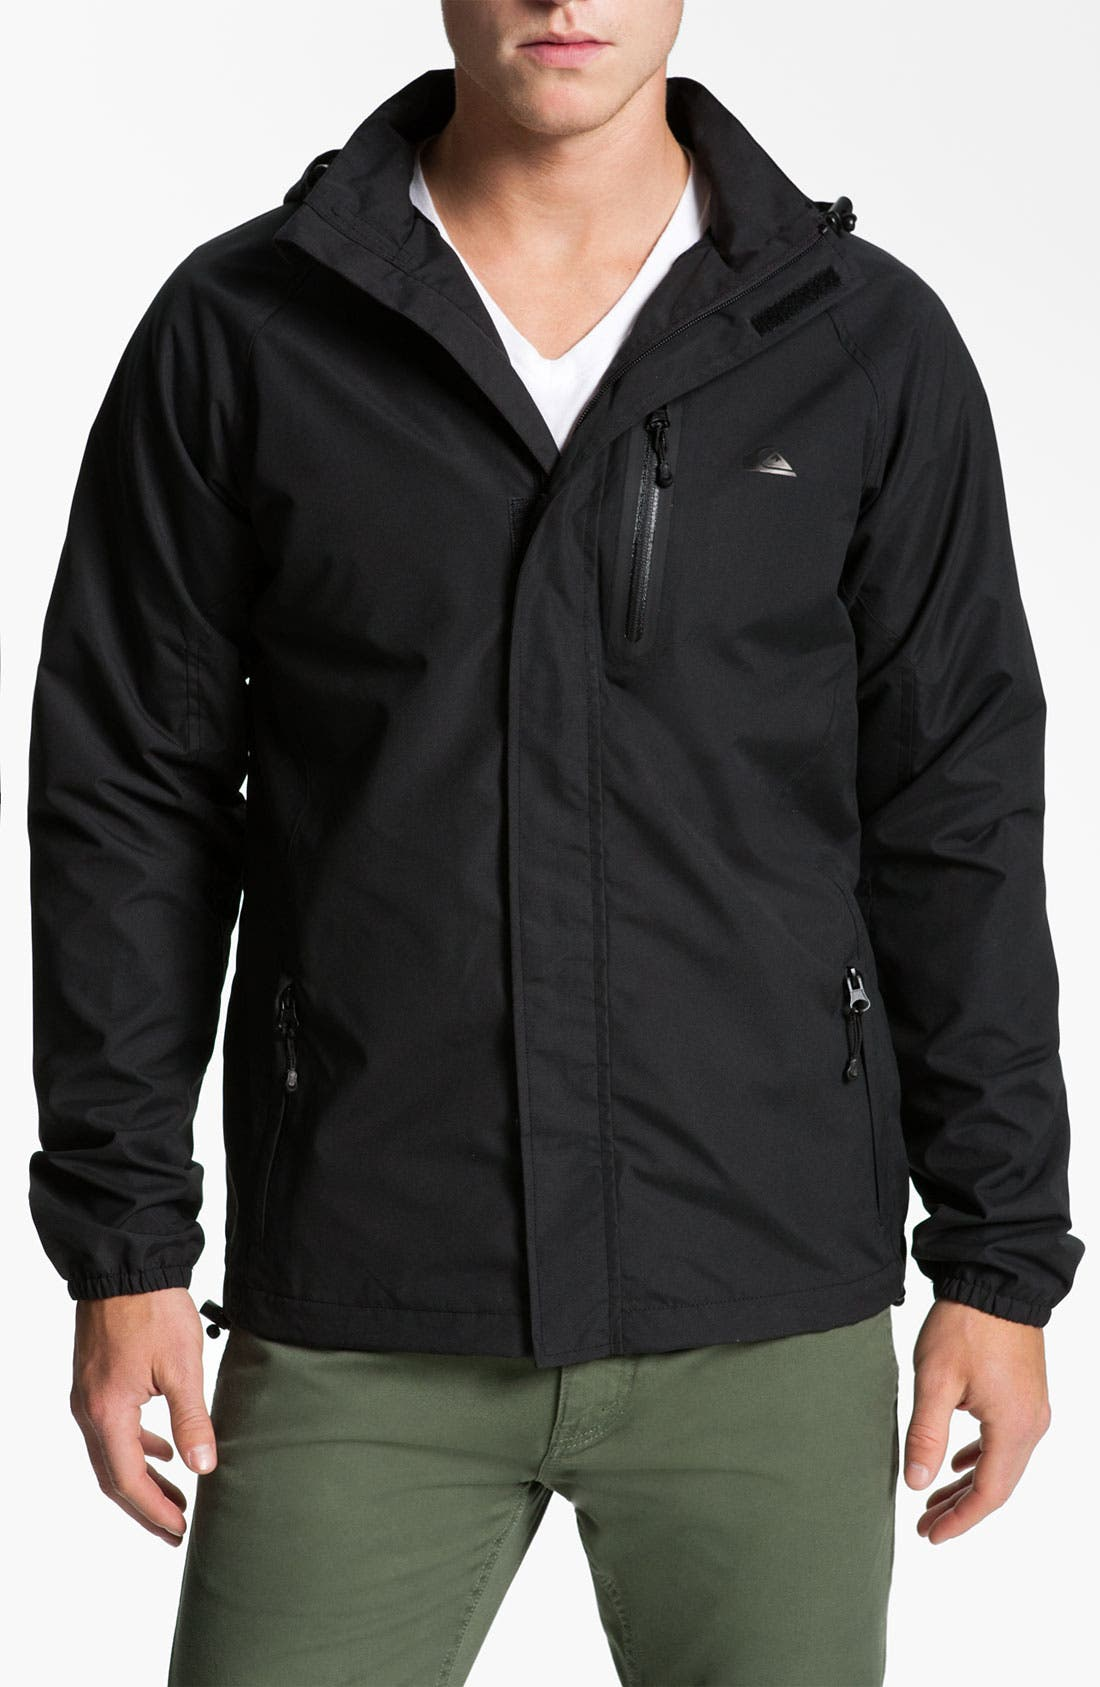 Alternate Image 1 Selected - Quiksilver 'Icon' Microfiber Jacket